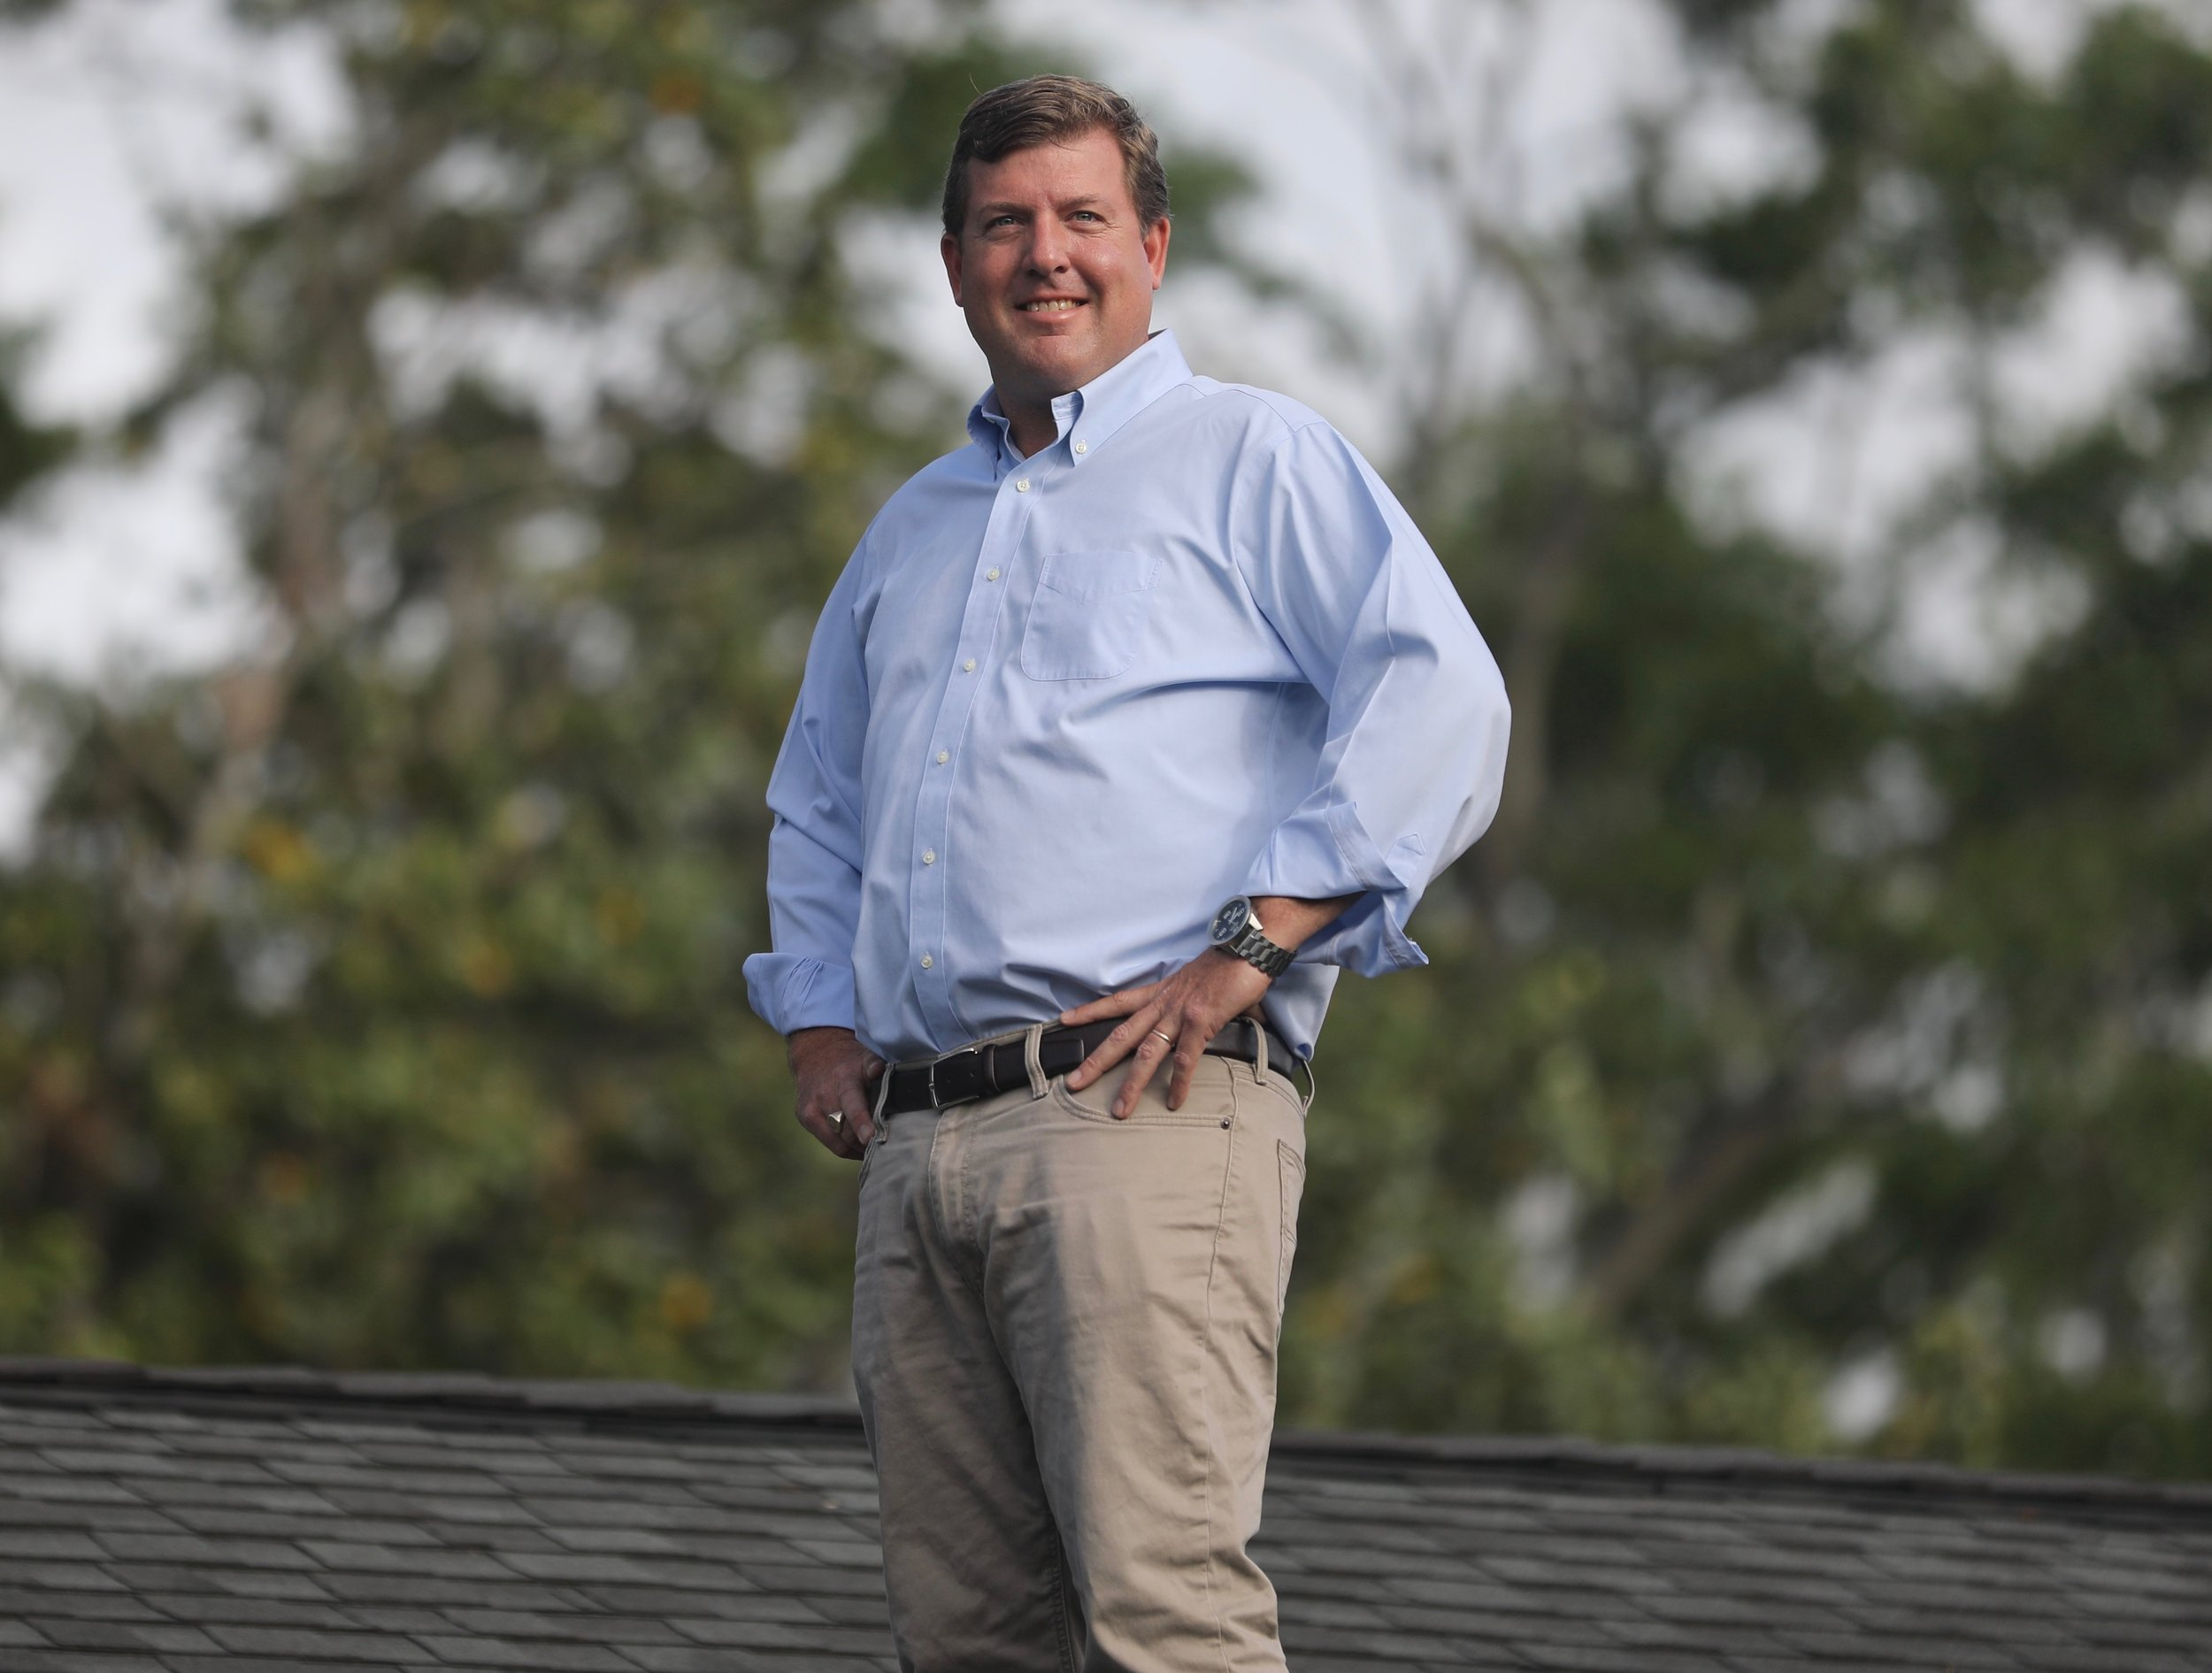 Randolph Stafford - With a broad range of experience in the building products and construction industry, you can be sure that Randolph is the best choice for your roofing project. His extensive product knowledge comes from years of training in the manufacturing sector of the roofing industry. While Randolph is a steep slope roofing and ventilation expert, he stays current with roofing industry standards by participating in continuous education seminars regularly. His experience in the distribution sector of the roofing industry has taught him the importance of planning and logistics to a successful construction project. The relationships that he has developed with the roofing industry's leaders are second to none. Randolph is committed to leveraging his experience and relationships to help each customer make the best roofing choices for their home.Homeowners throughout the Charleston Metro area trust Randolph with their roofing needs. His attention to detail and dedication to the ultimate customer experience make Northbridge Roofing the logical choice when it comes to selecting a roofing contractor. With Randolph, you are guaranteed to have a professional contractor who has your best interests in mind at all times.Randolph and his wife, Mary Frances, live in West Ashley. Mary Frances is a nurse at Roper Hospital, and they attend Bethel United Methodist Church in downtown Charleston. Randolph truly is your neighborhood roofer.